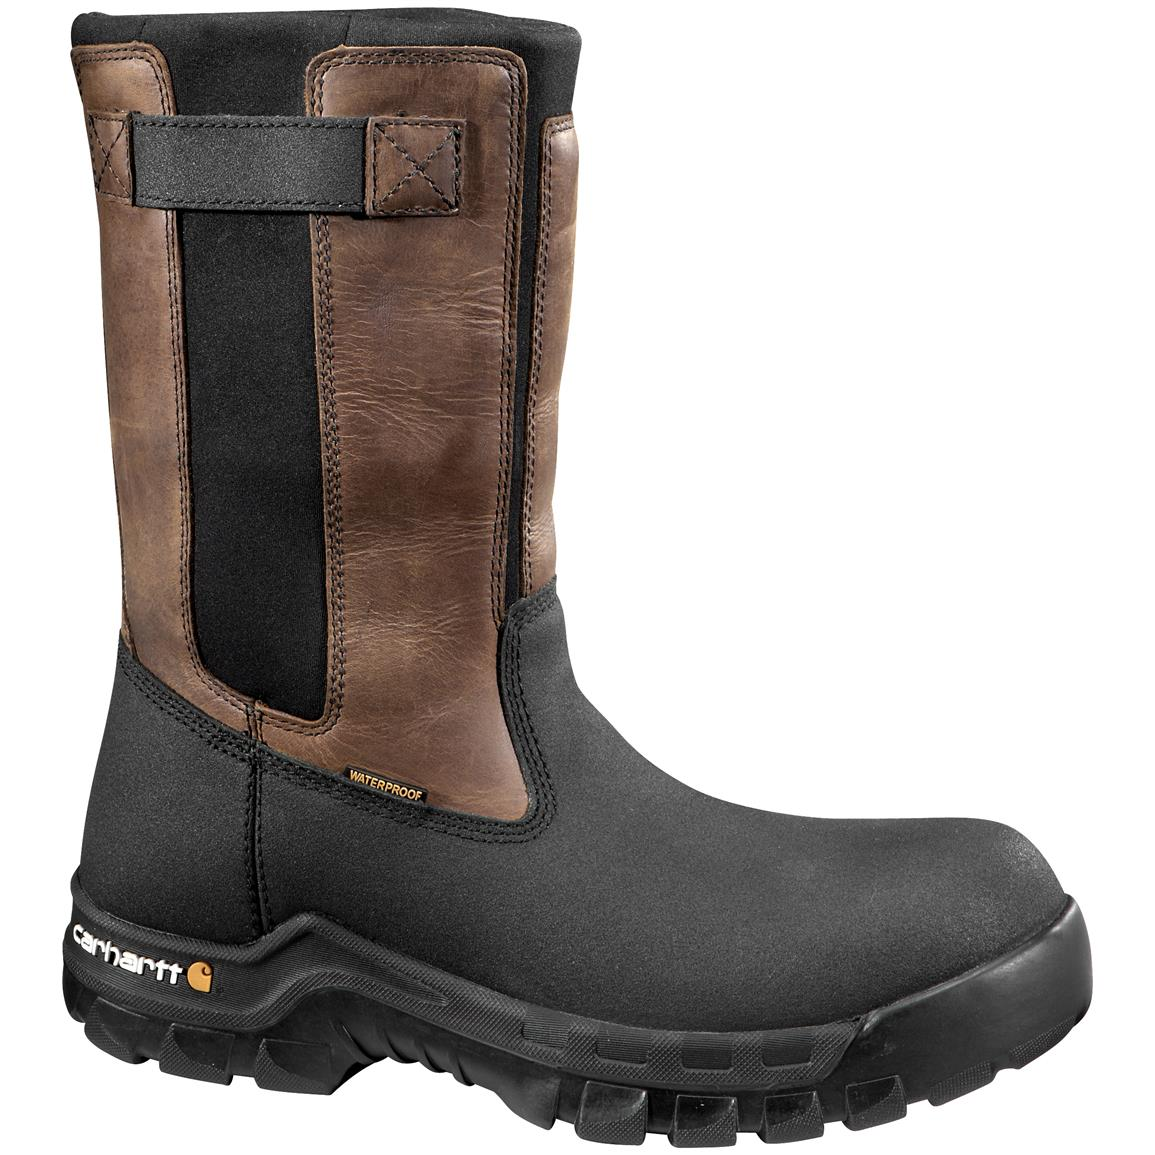 "Carhartt 10"" Rugged Flex Waterproof Composite Toe Pull-on Work Boots"